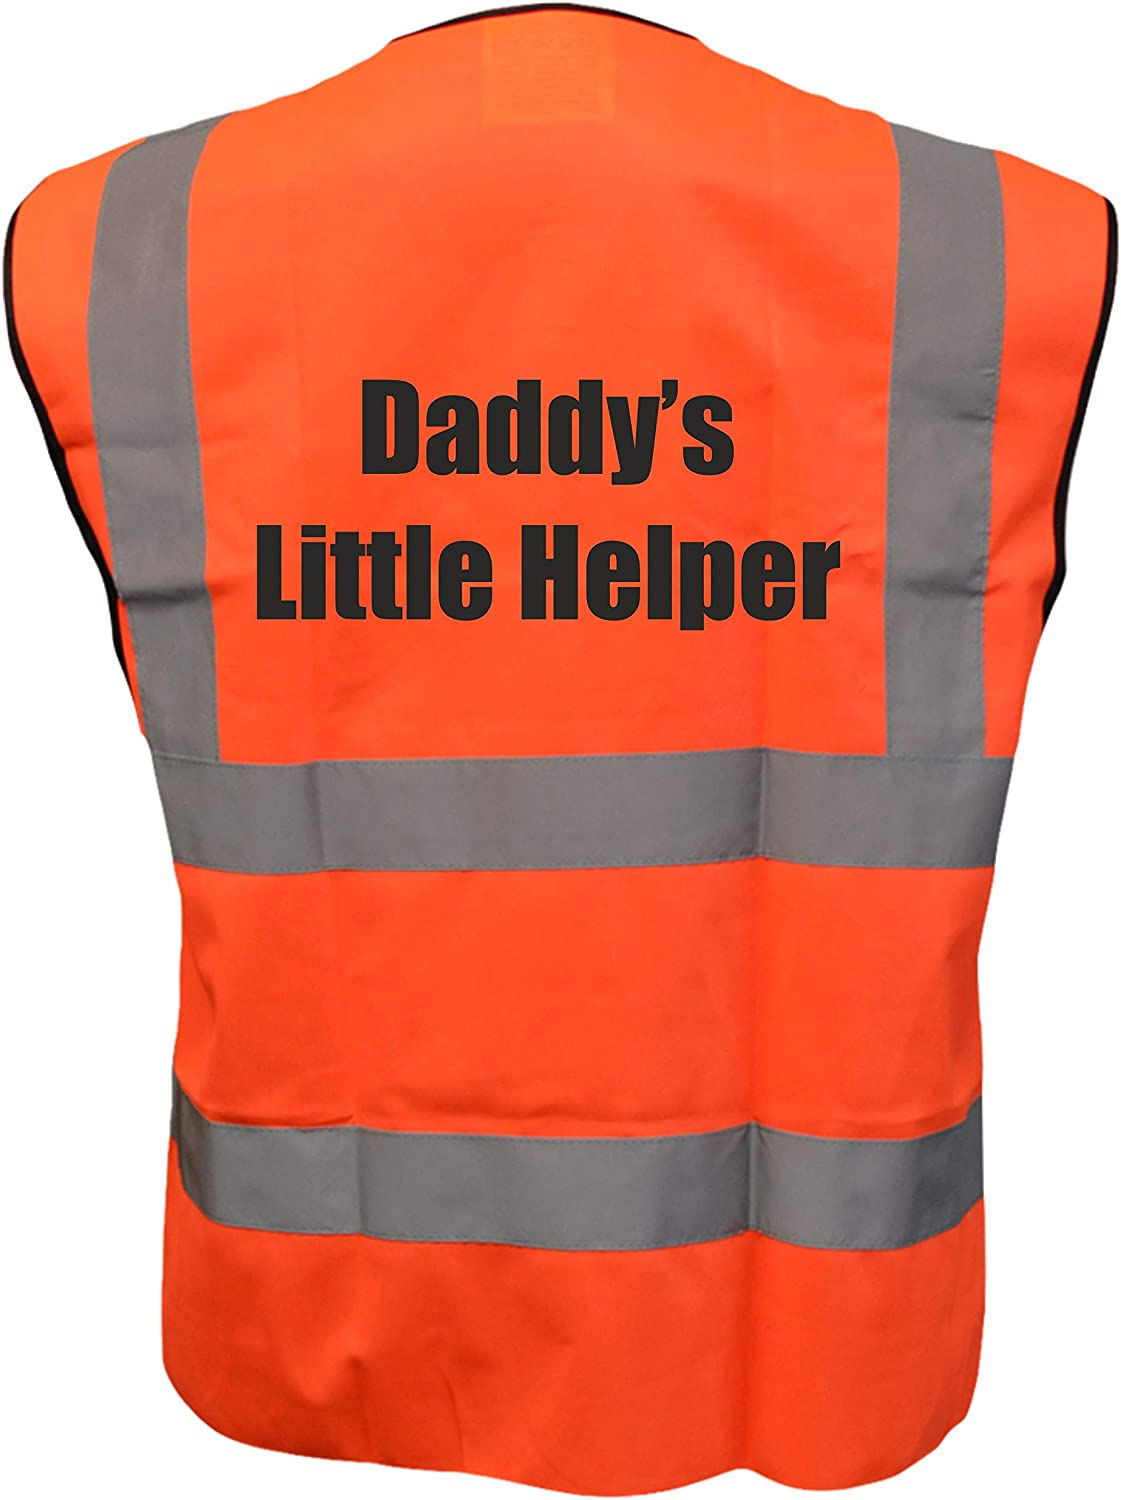 Daddys Little Helper Kids Yellow Orange Pink Hi Vis Viz Vest Waistcoat Childrens High Visibility Reflective Fancy Dress